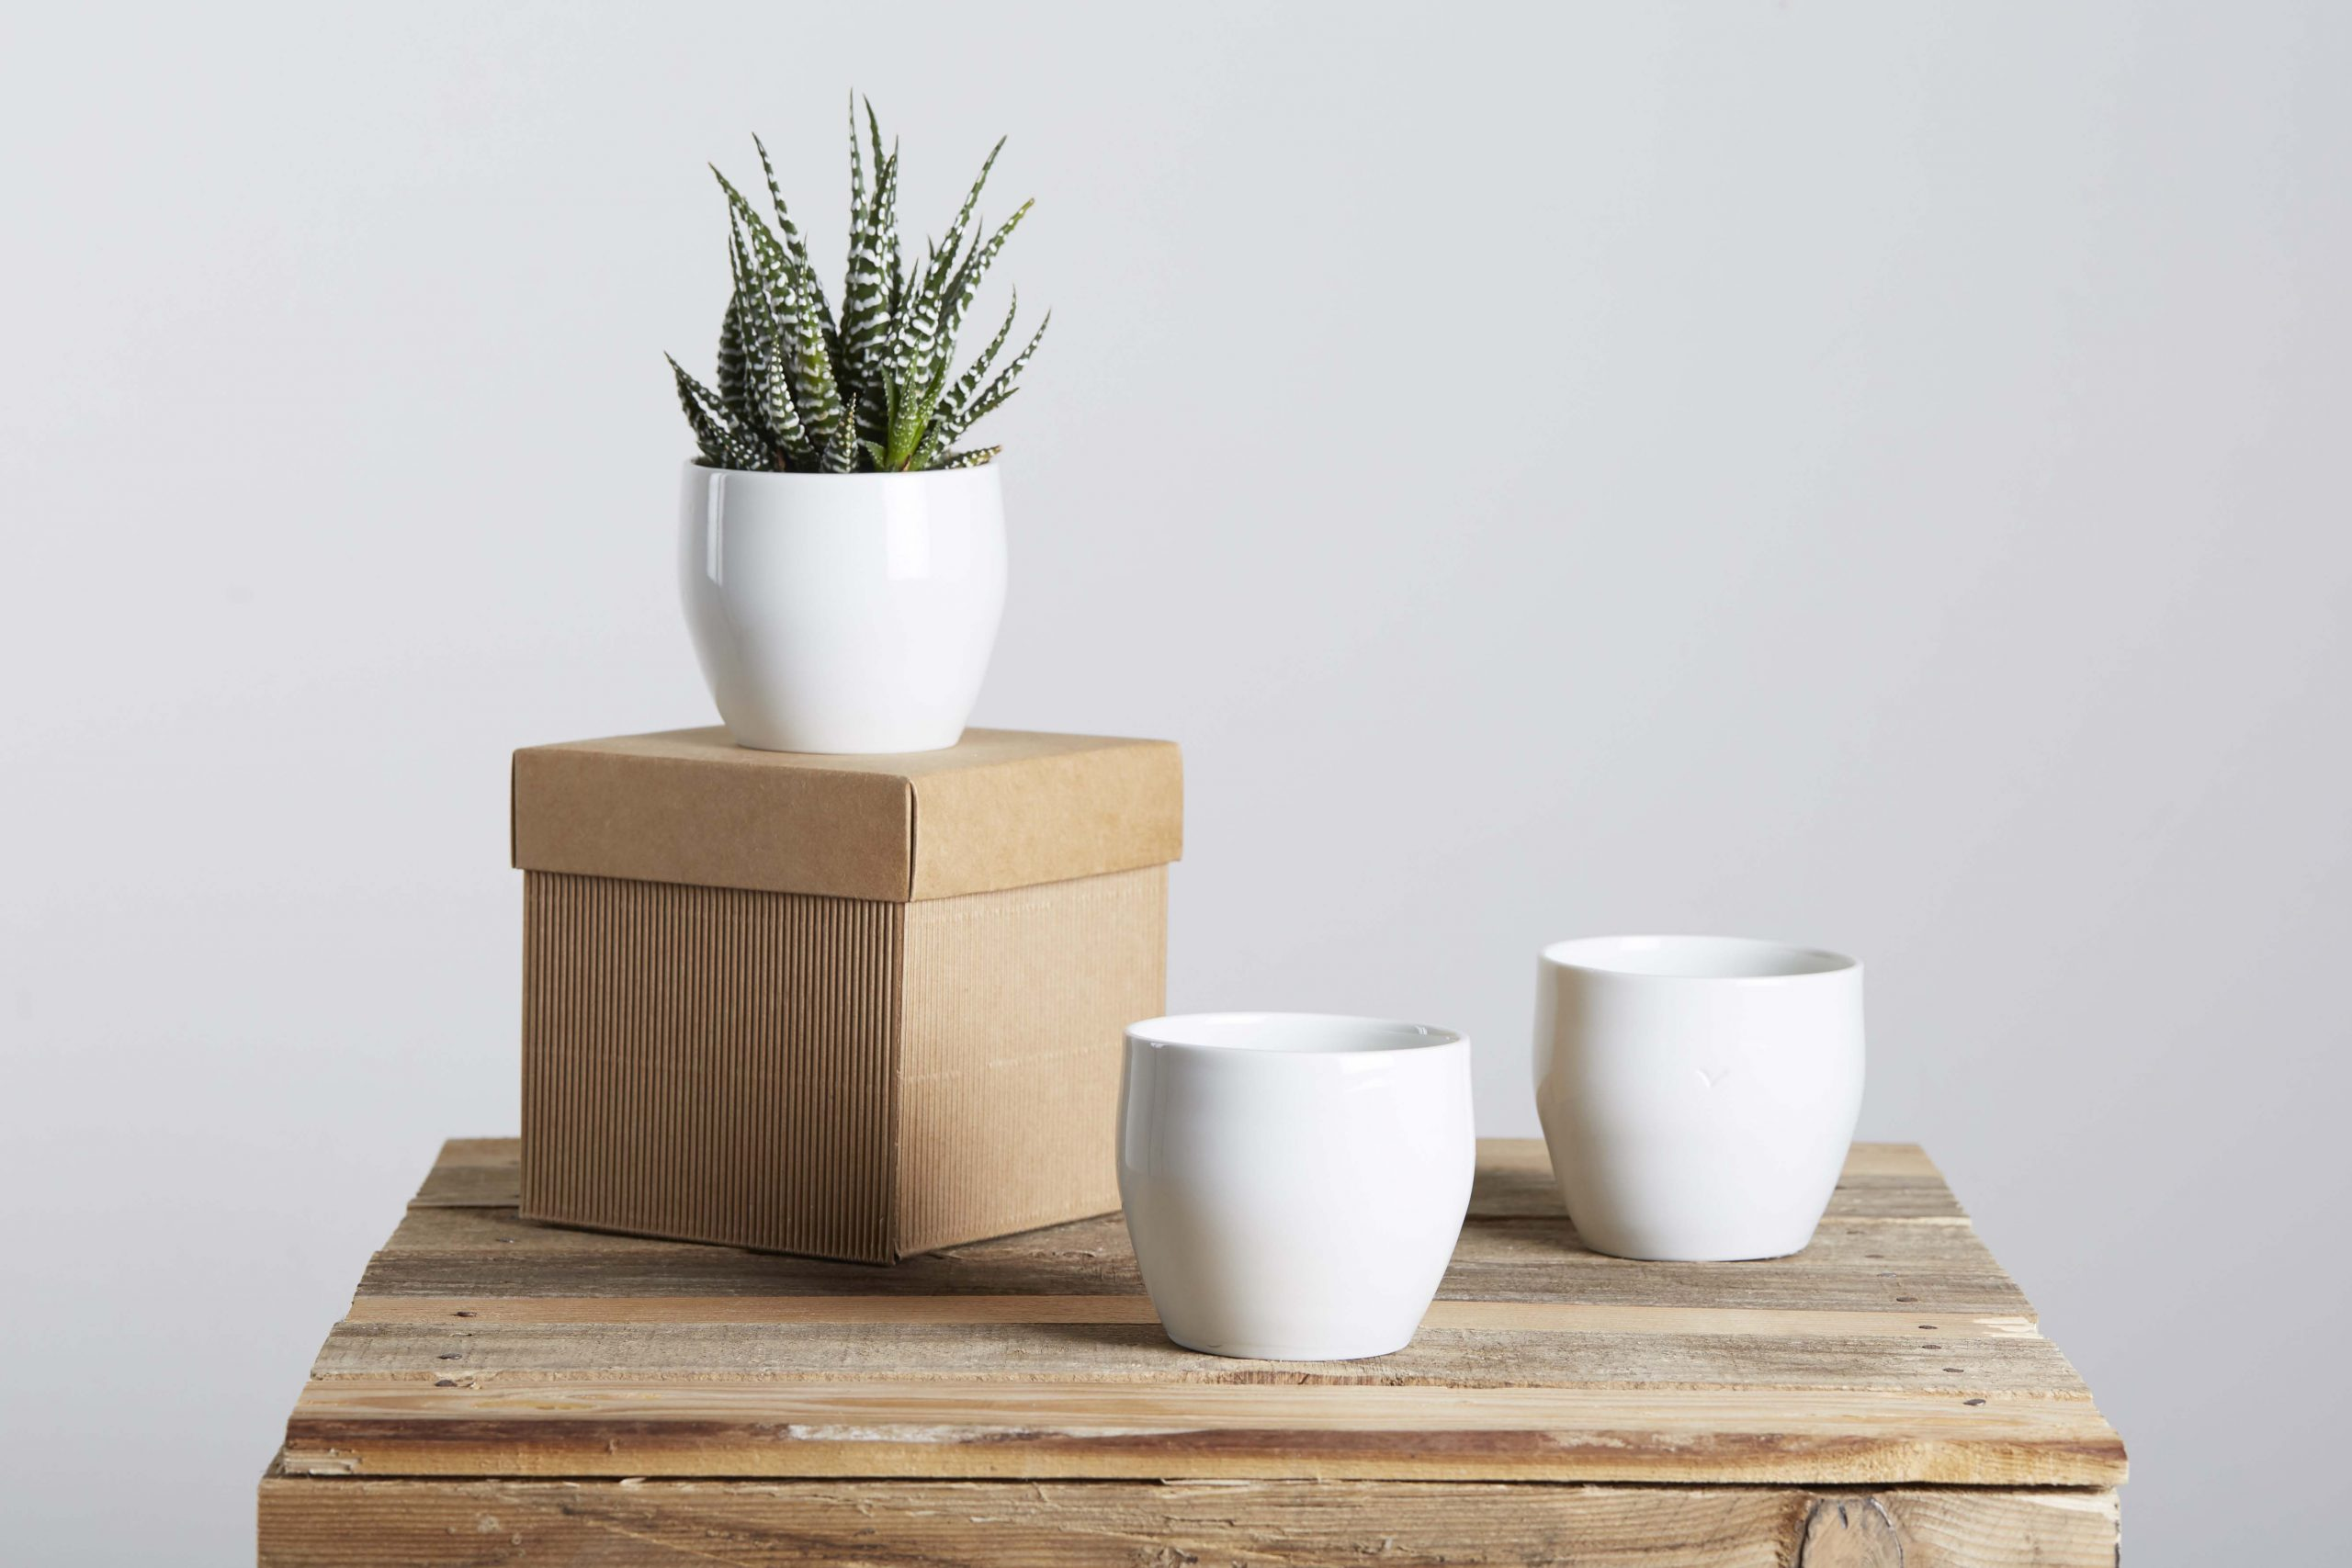 mini white porcelain vases with the plant and their box for favors - handmade - Federica Ramacciotti